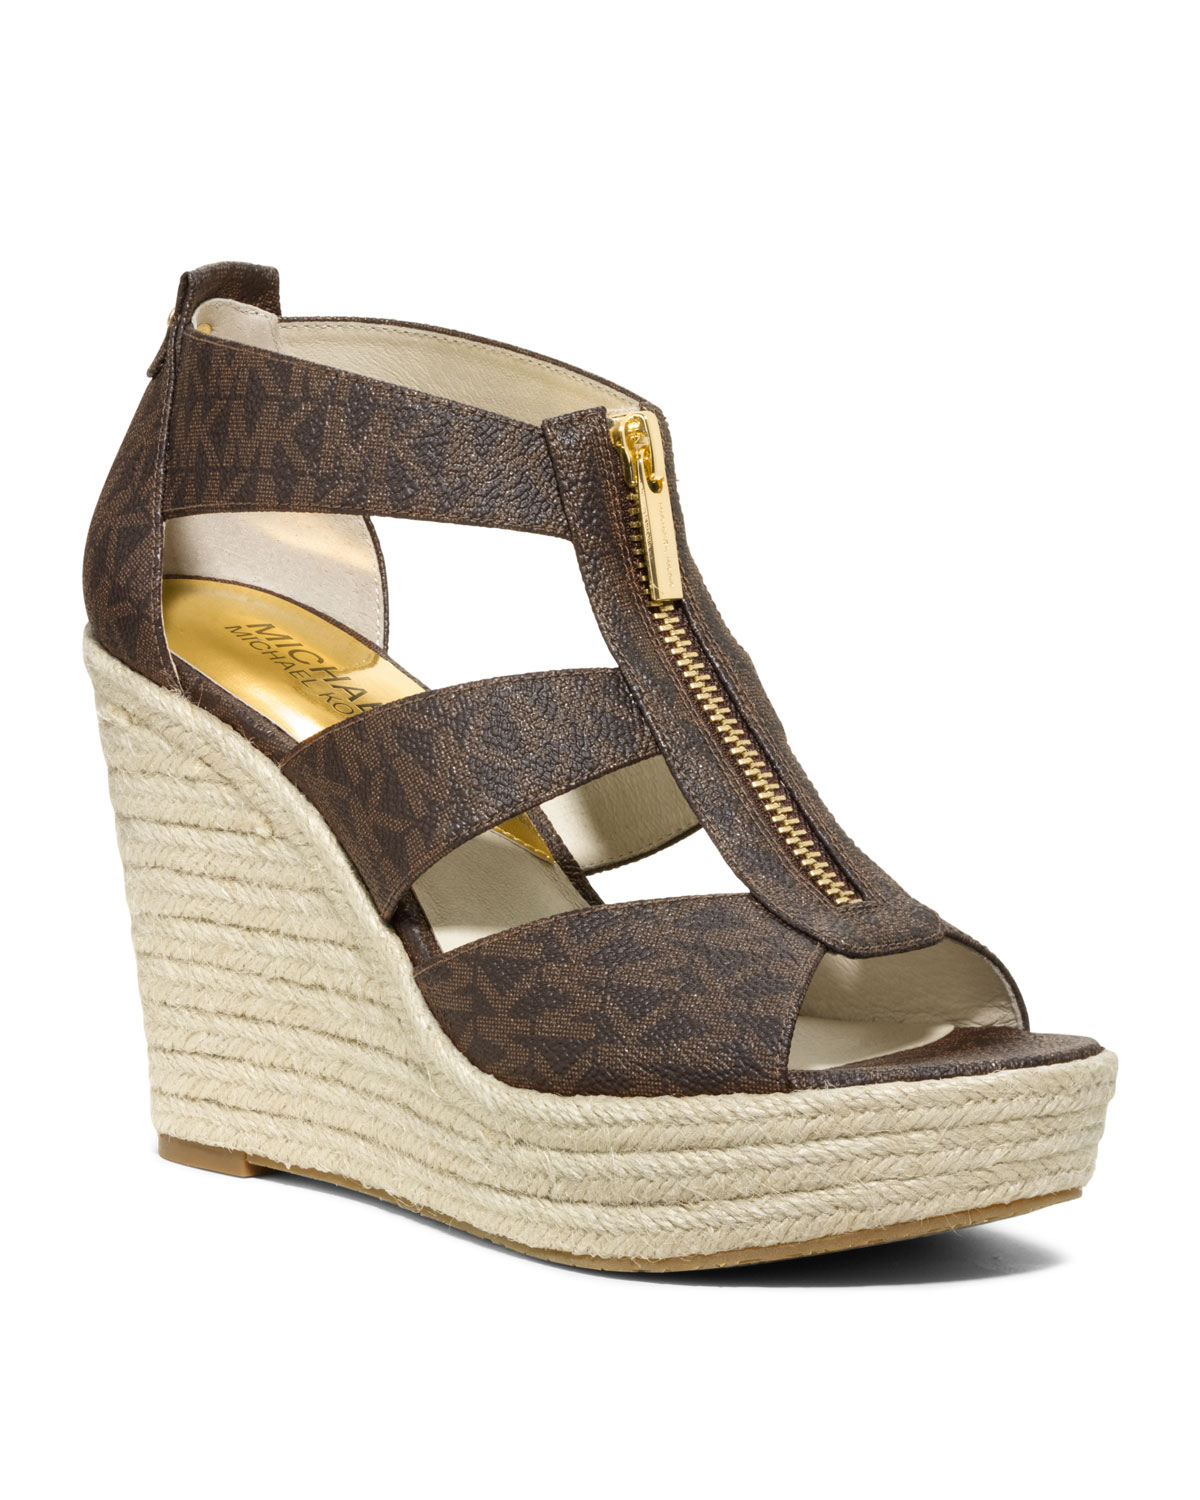 Lyst Michael Kors Damita Logo Zipper Wedge Sandal In Brown